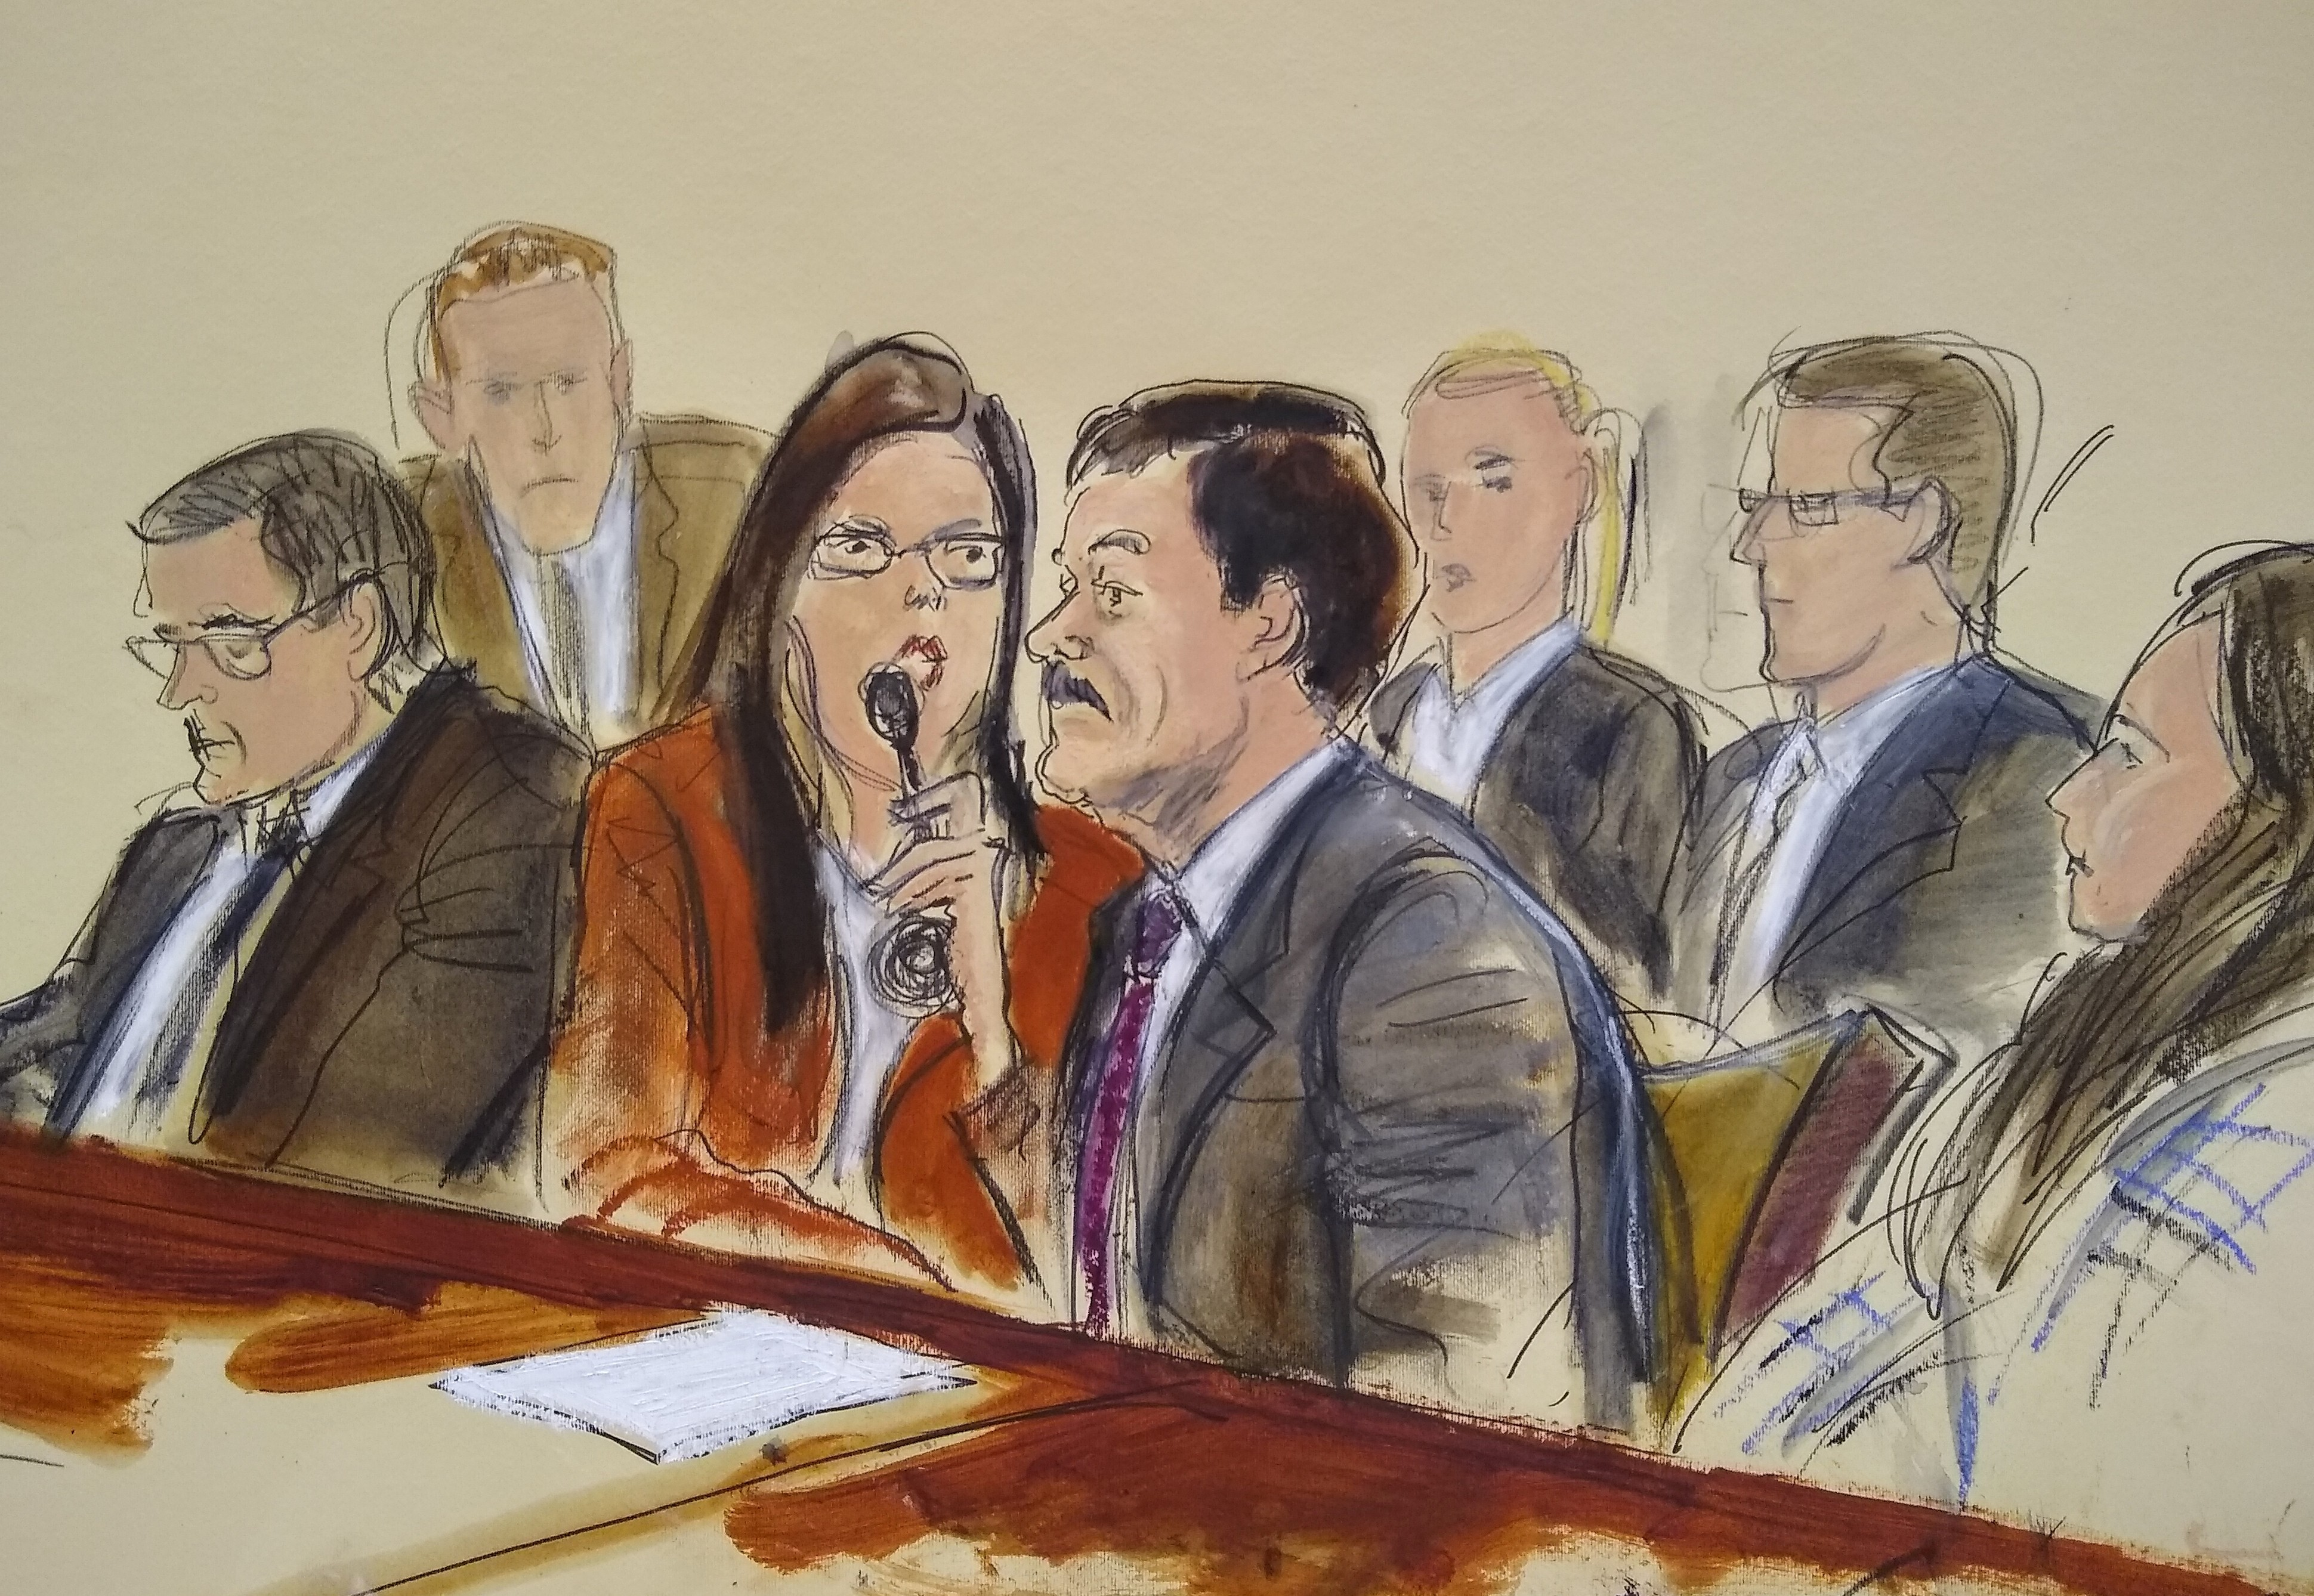 El Chapo sentenced in New York federal court - The Washington Post